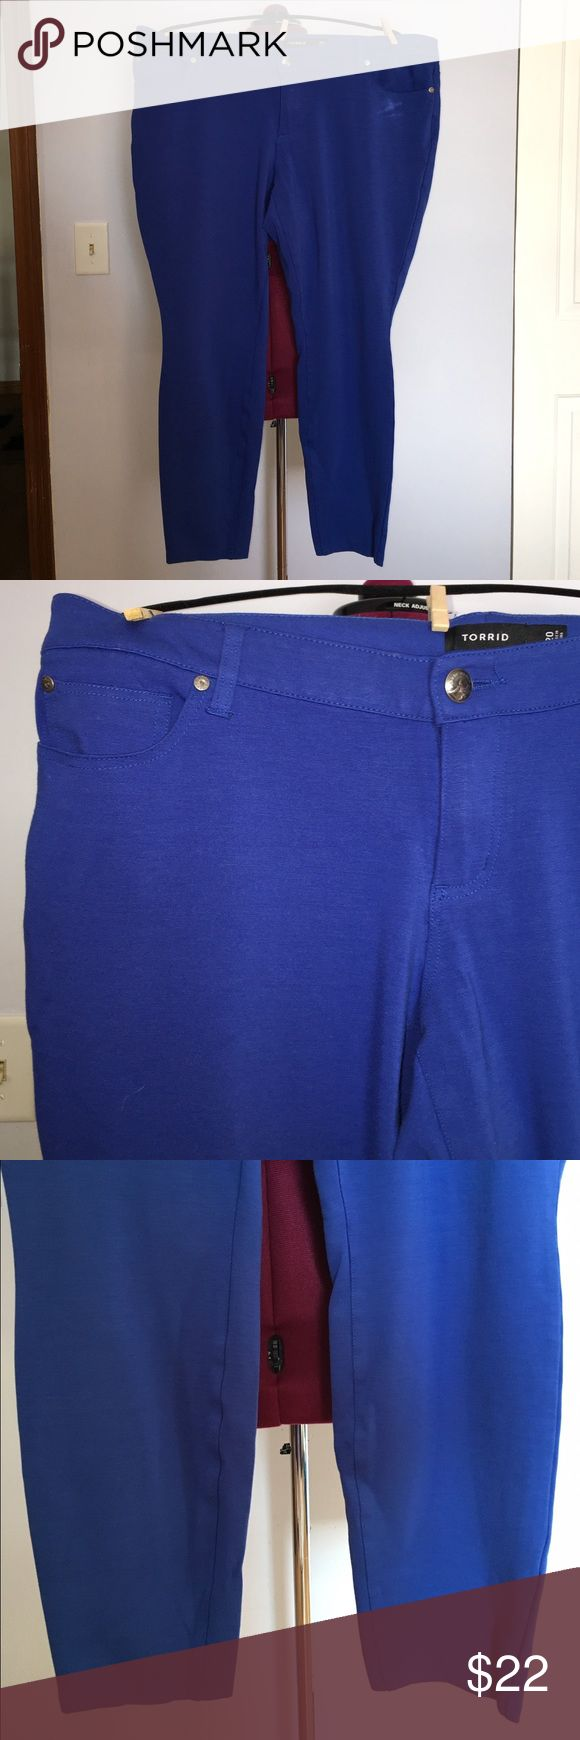 """Torrid Cobalt Blue Skinny Pants size 20 Up for grabs is this pair of jeggings from Torrid. They are a size 20 with a 28.5"""" inseam, a 45"""" waist and 47"""" hips. These pants are skinny style and stretch really well. They are cobalt blue with a button and zipper closure. These skinnies have been gently worn and are in terrific condition. torrid Pants Skinny"""